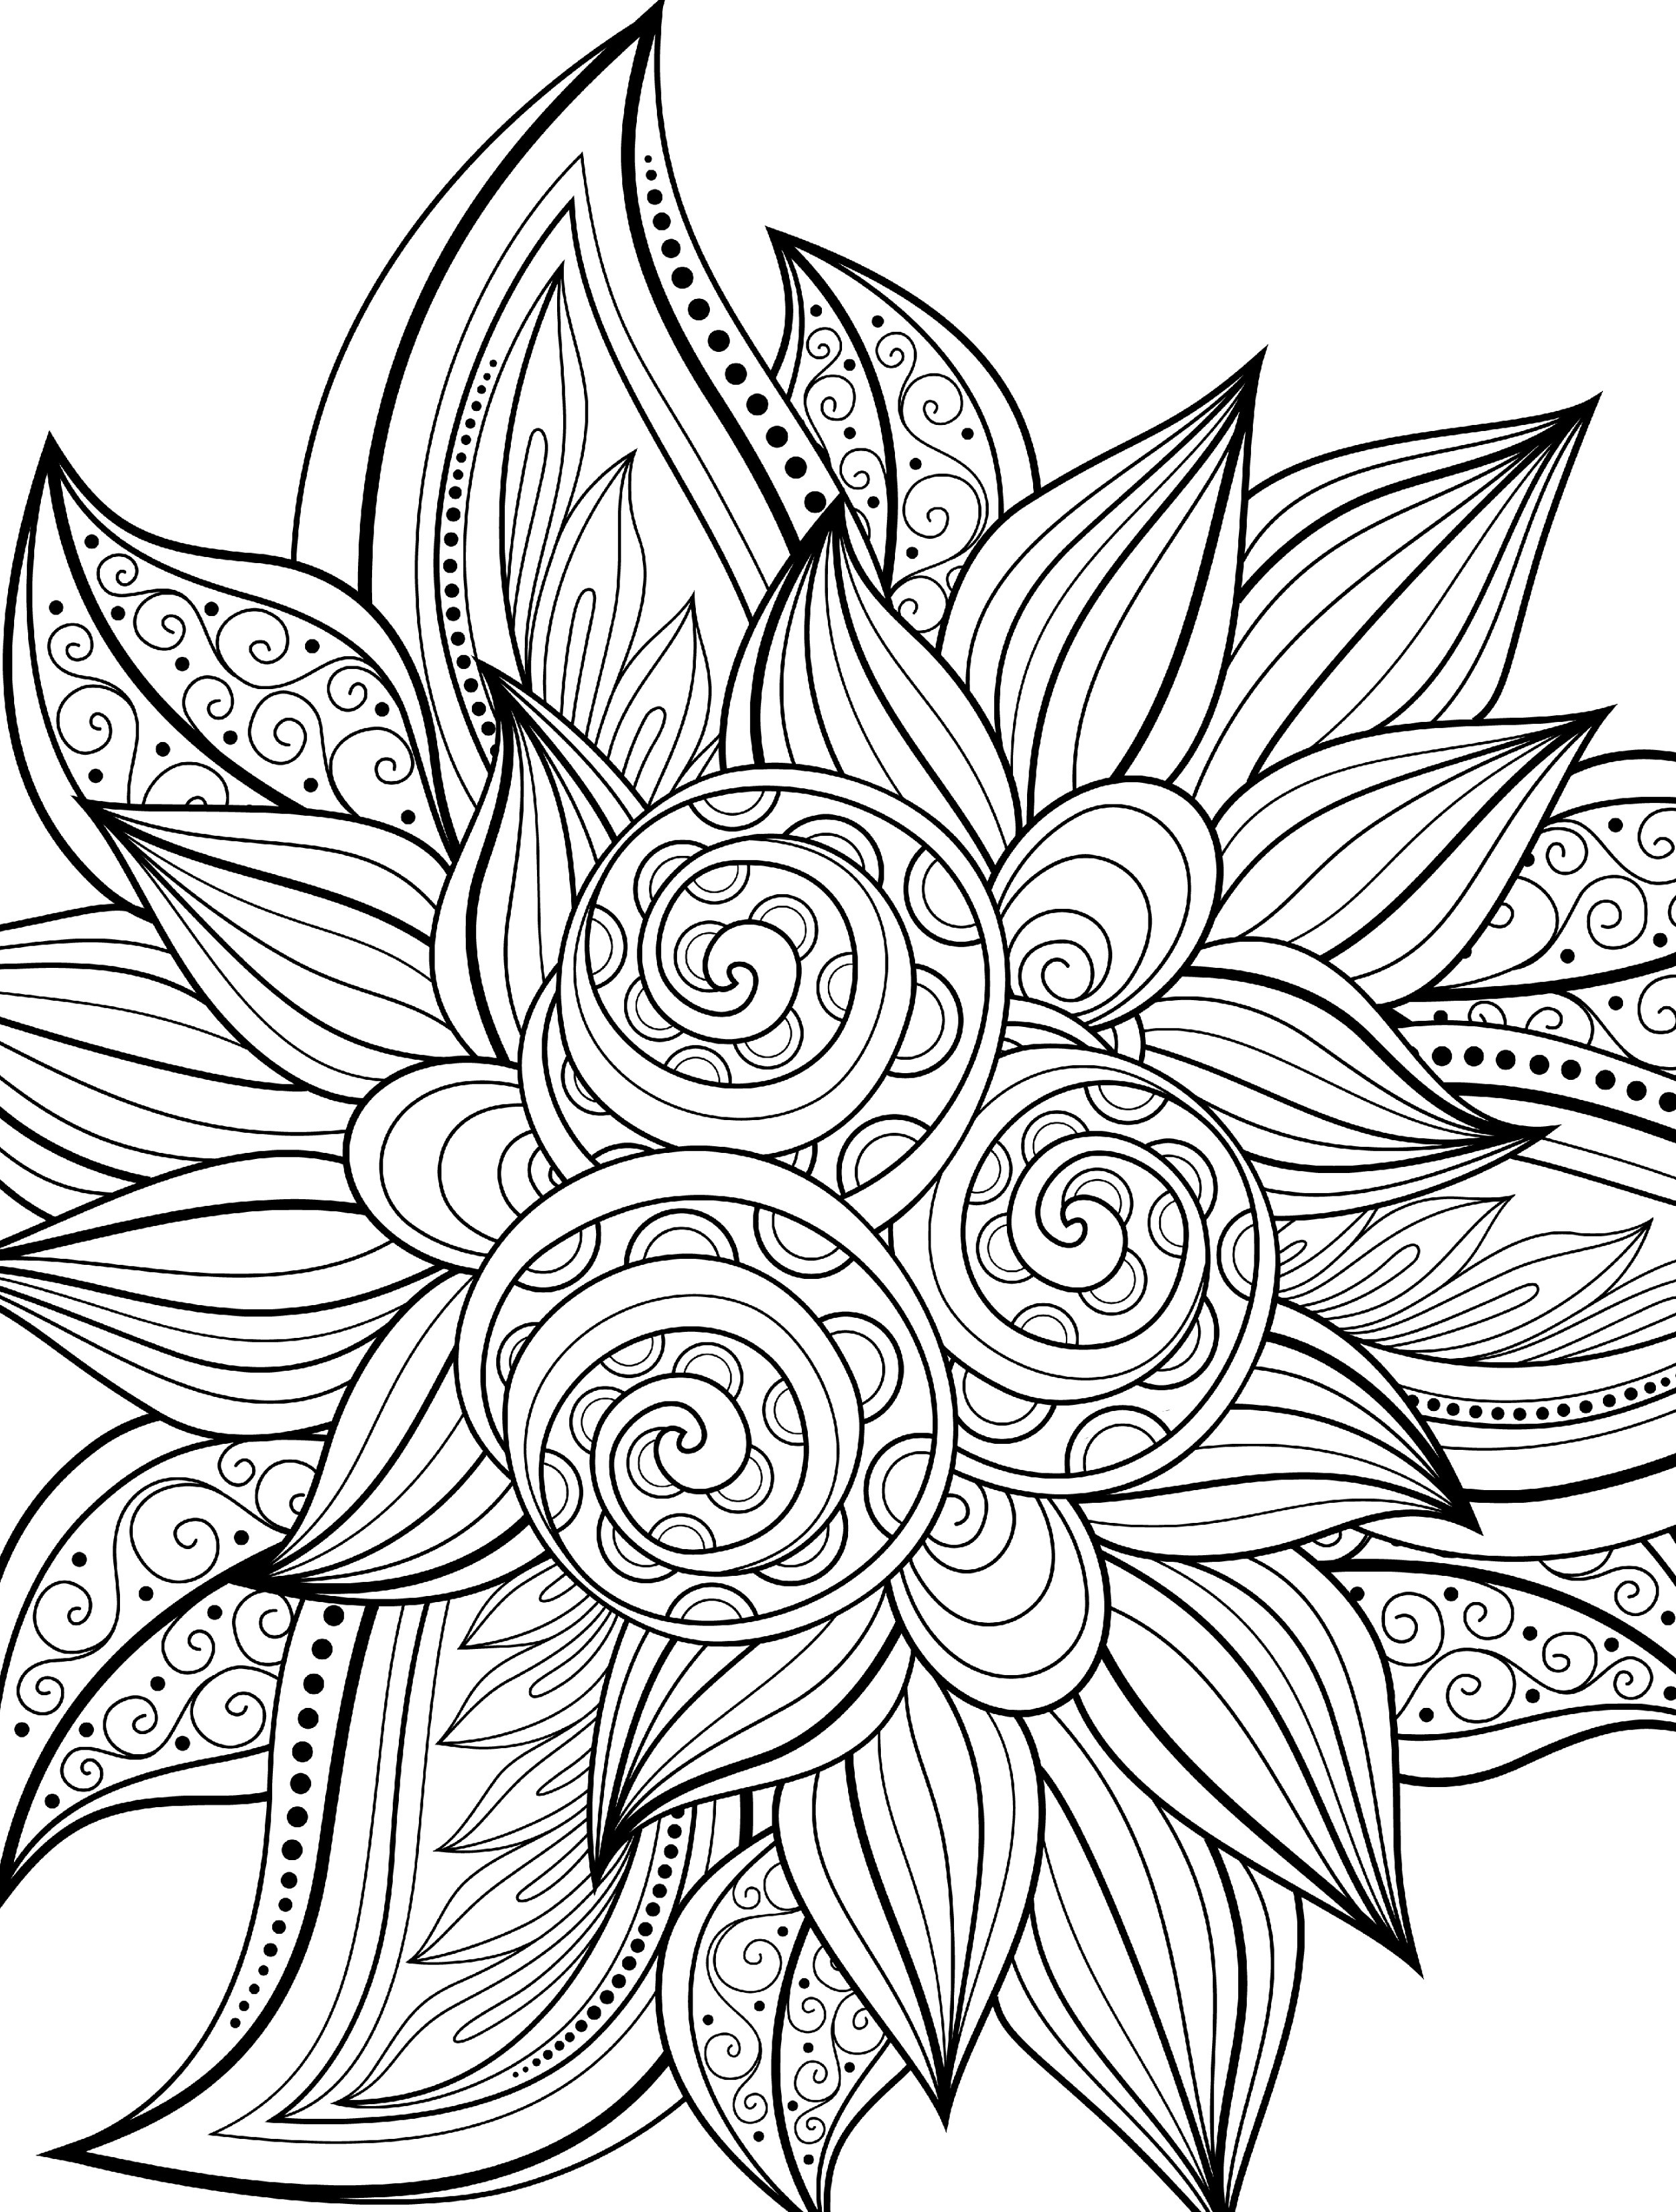 Best ideas about Christmas Coloring Pages For Adults Pdf . Save or Pin 10 Free Printable Holiday Adult Coloring Pages Now.